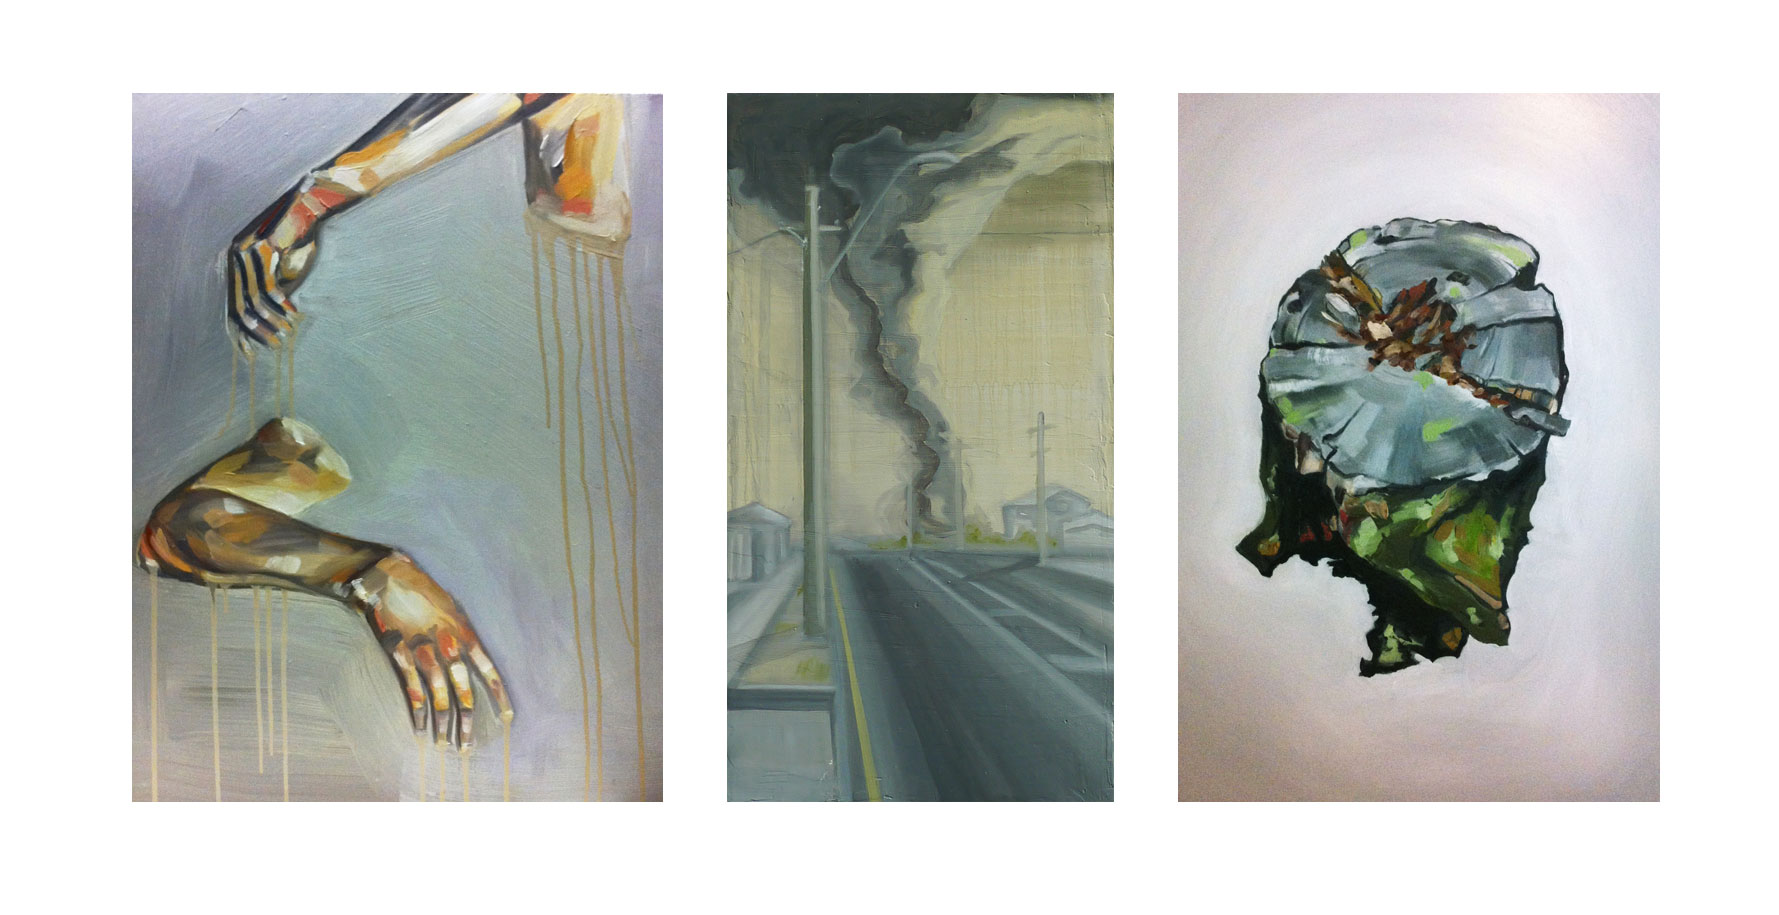 Left to right: Flesh study, 2011; Suburban future, 2010; Mark of man, 2012, oil on board